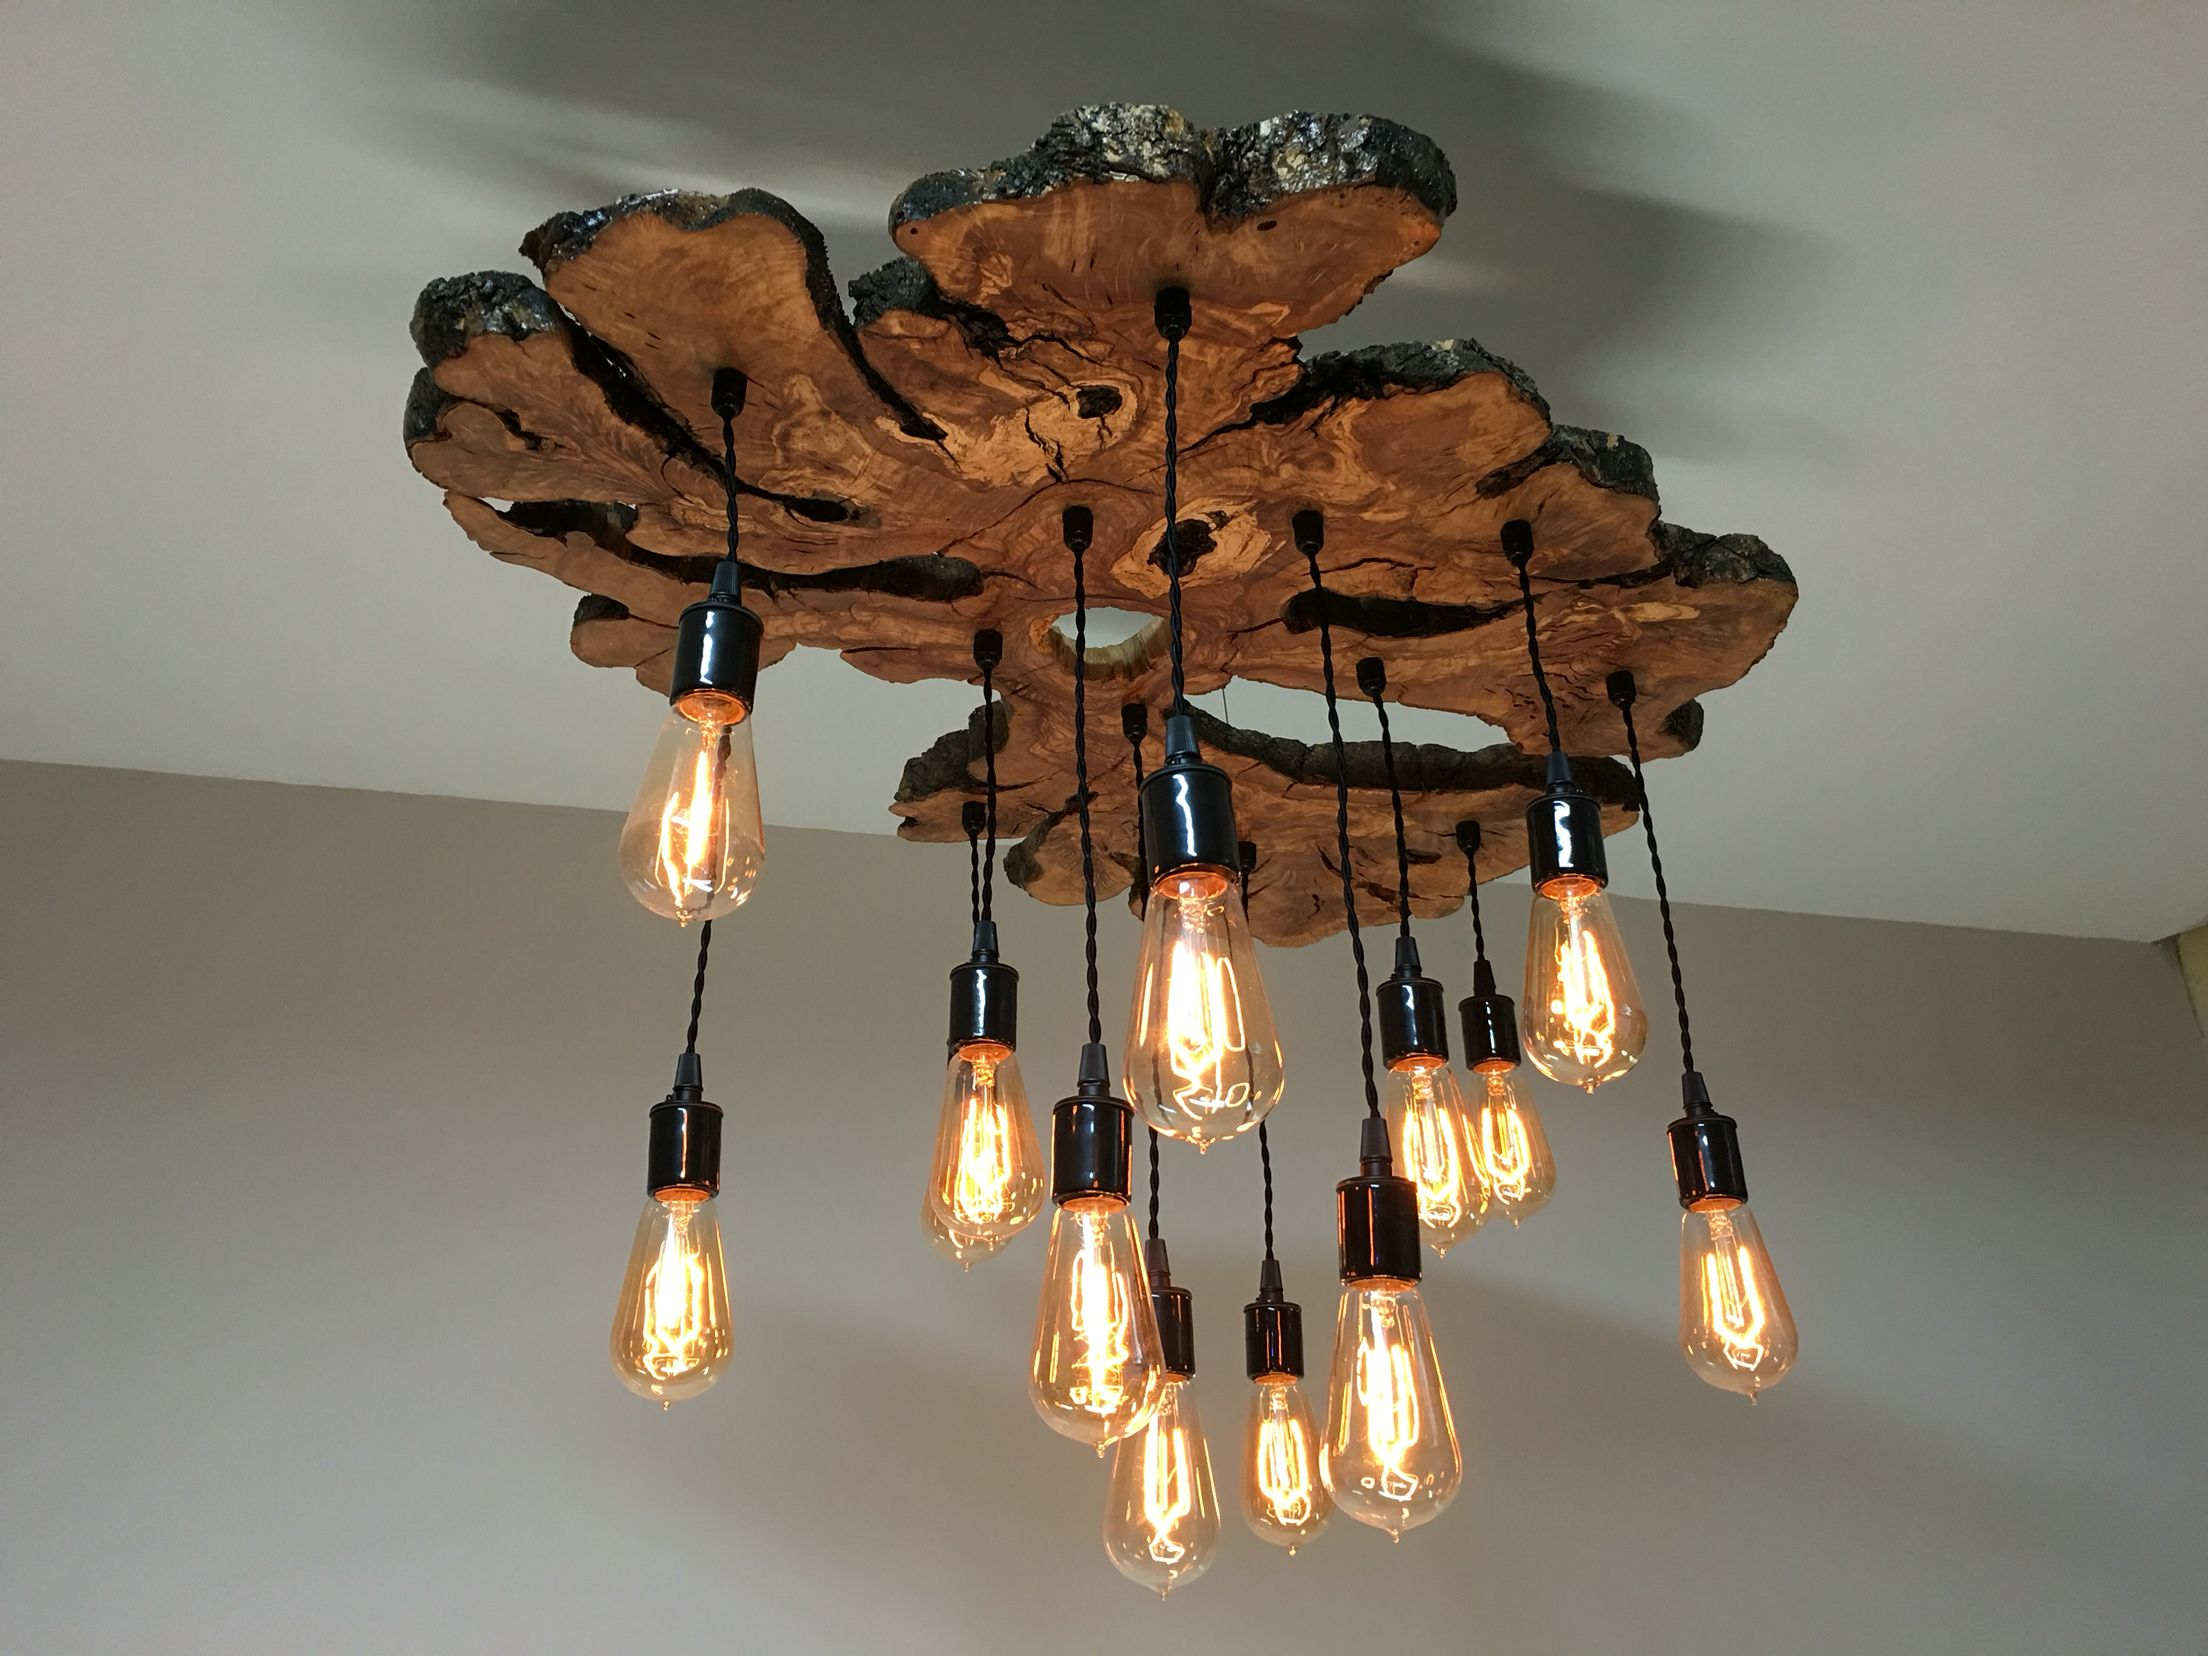 Live edge olive wood chandelier 7mwoodworking design interior